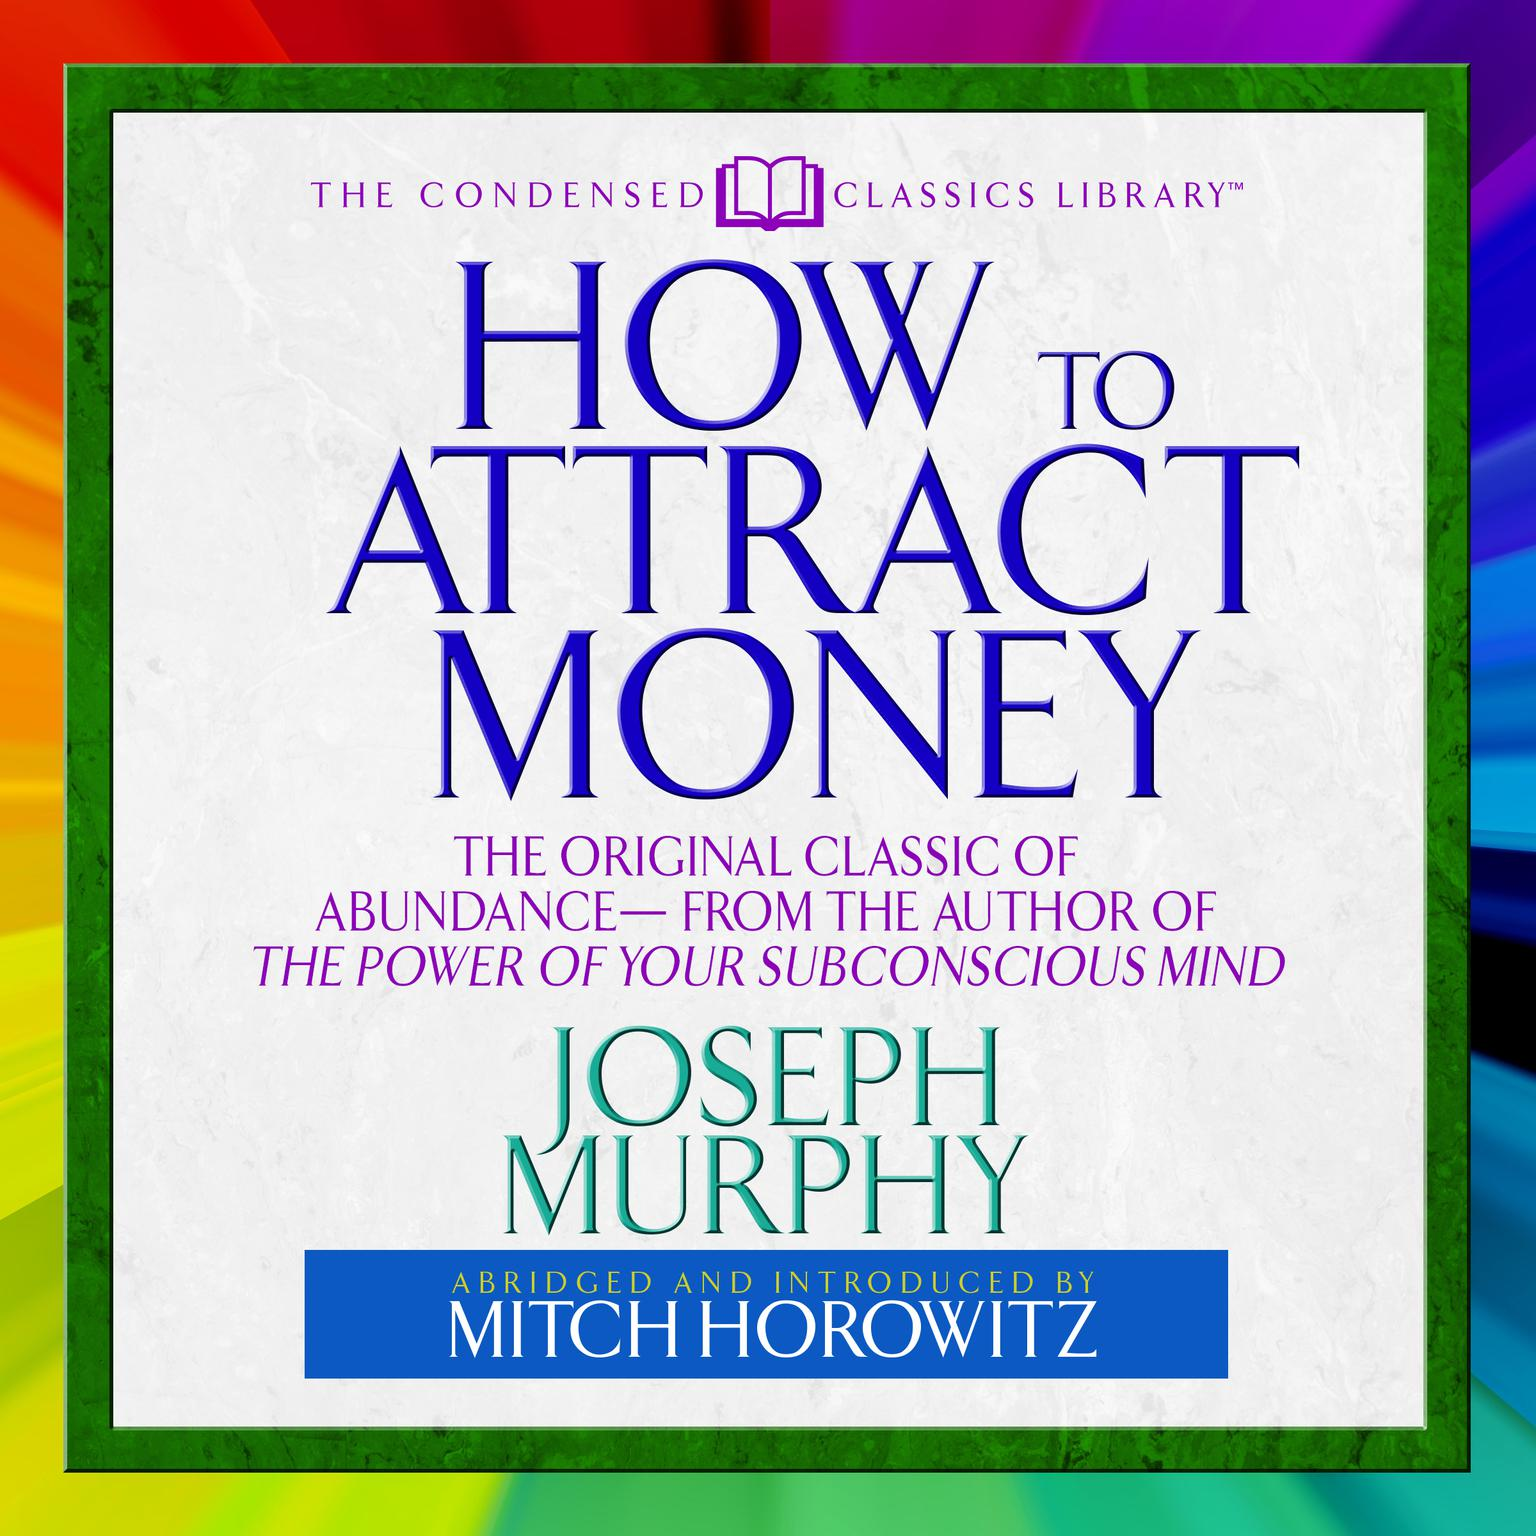 How to Attract Money (Abridged): The Original Classic of Abundance From the Author of The Power of Your Subconscious Mind Audiobook, by Joseph Murphy